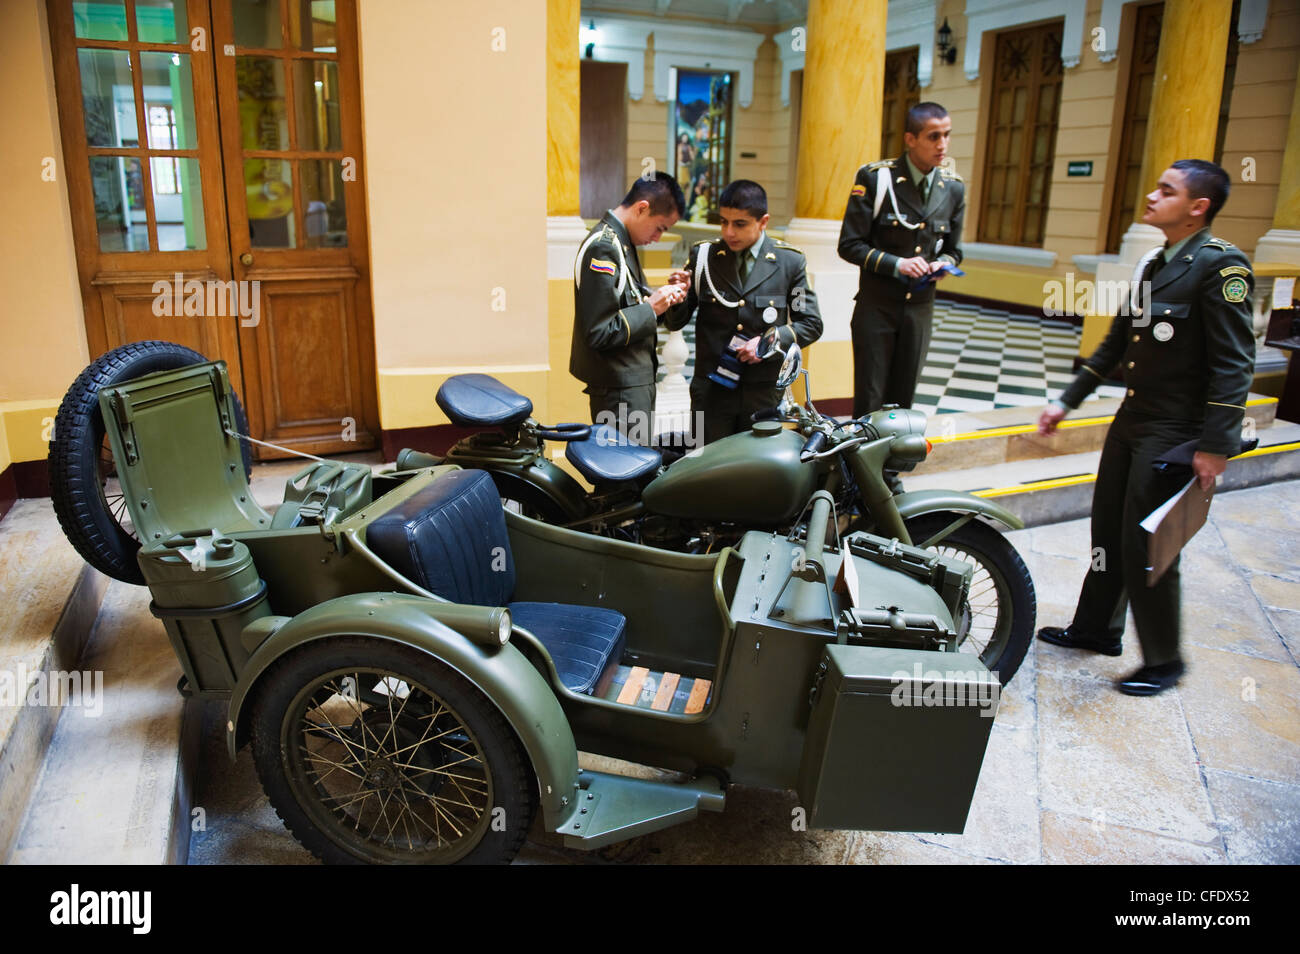 Policemen and motorbike display, Police Museum, Bogota, Colombia, South America - Stock Image